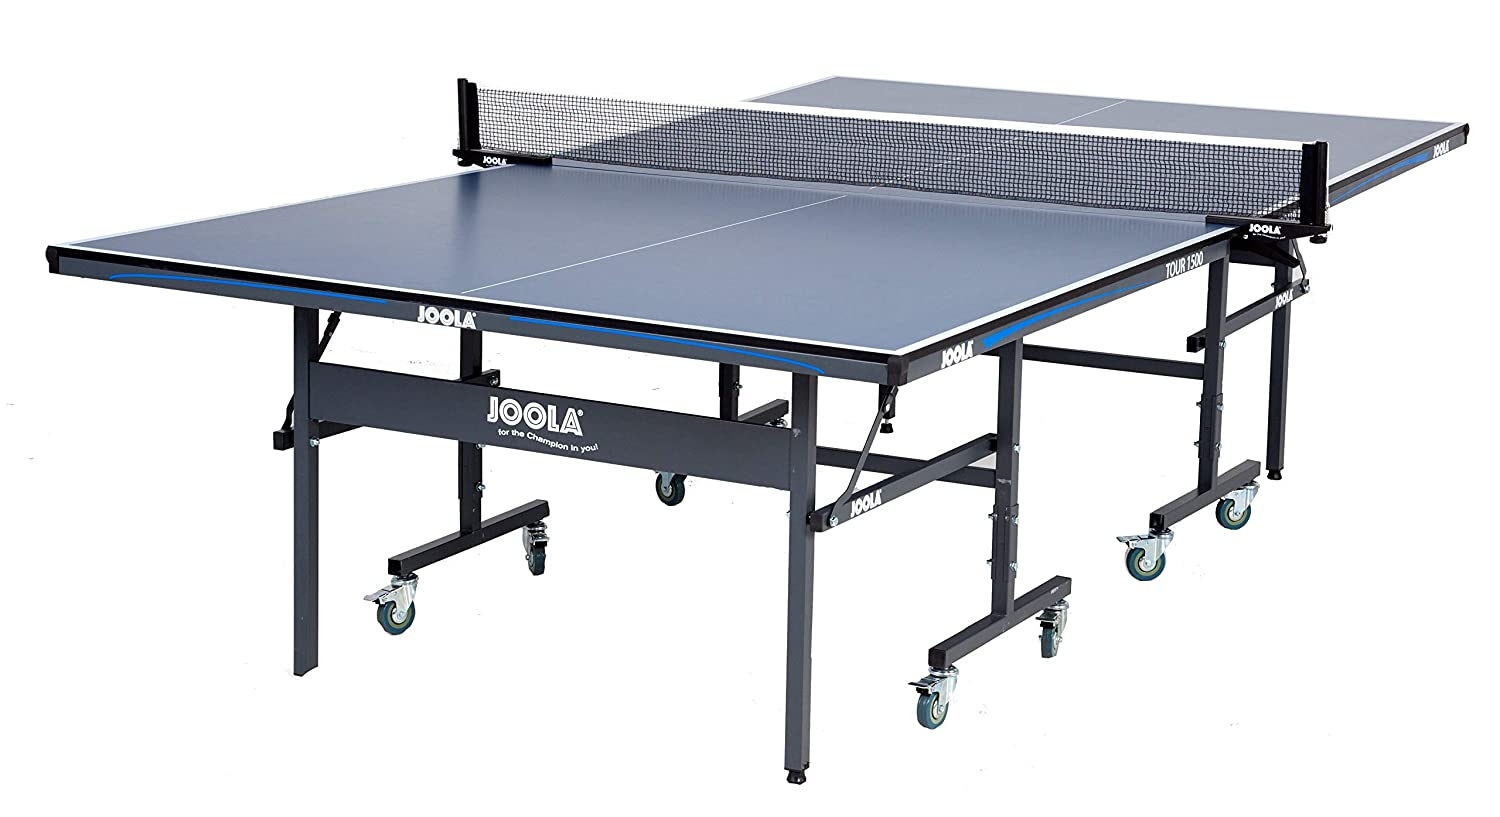 JOOLA Tour   Competition Grade MDF Indoor Table Tennis Table With Quick  Clamp Ping Pong Net Set   10 Minutes Easy Assembly   USATT Approved   Ping  Pong ...